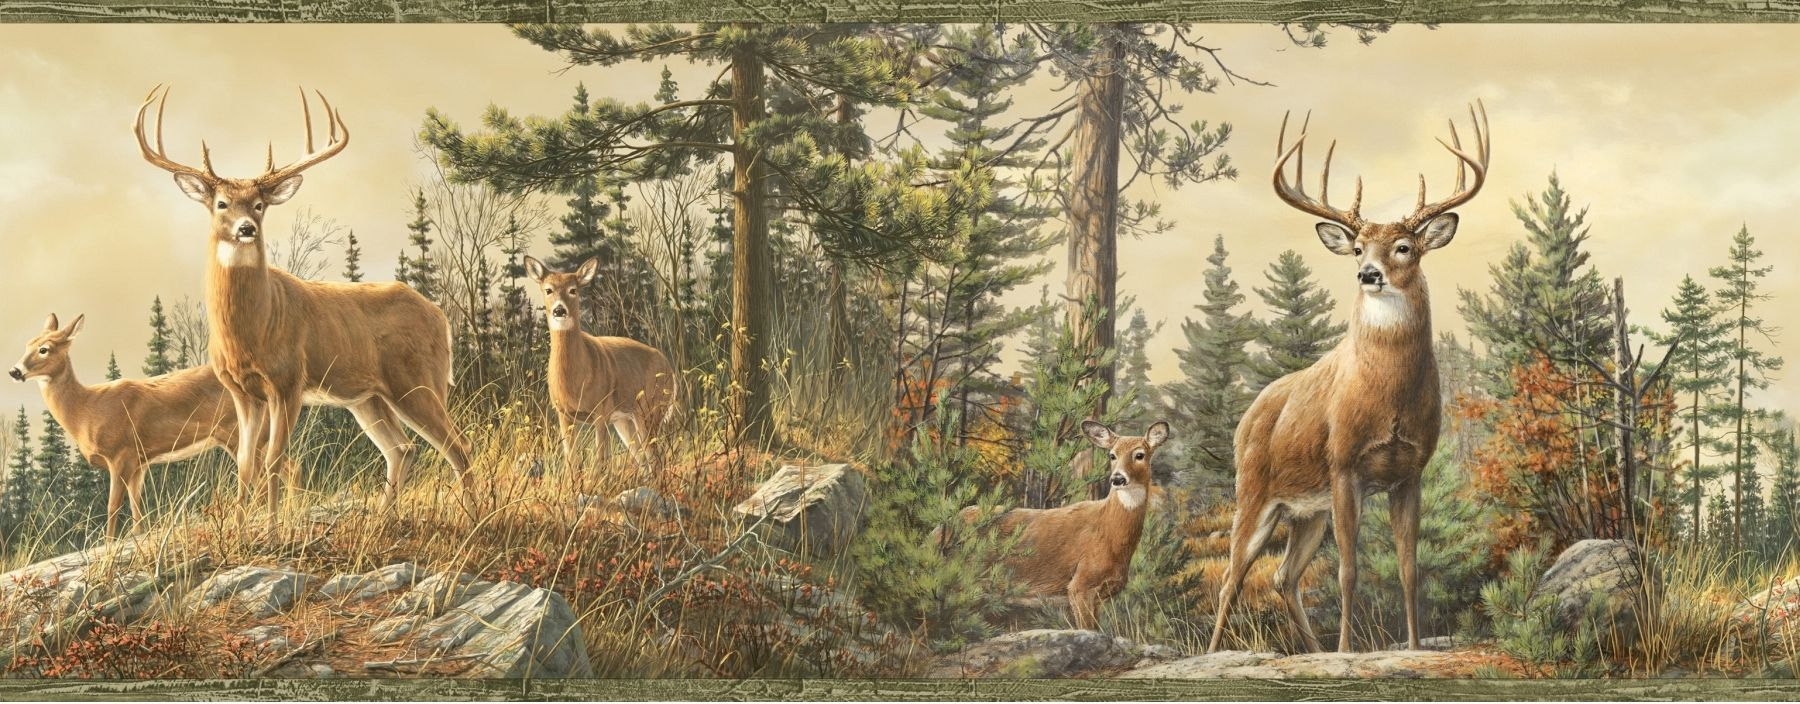 1800x704 Whitetail Crest Deer Wallpaper Border | Epic Car Wallpapers ...